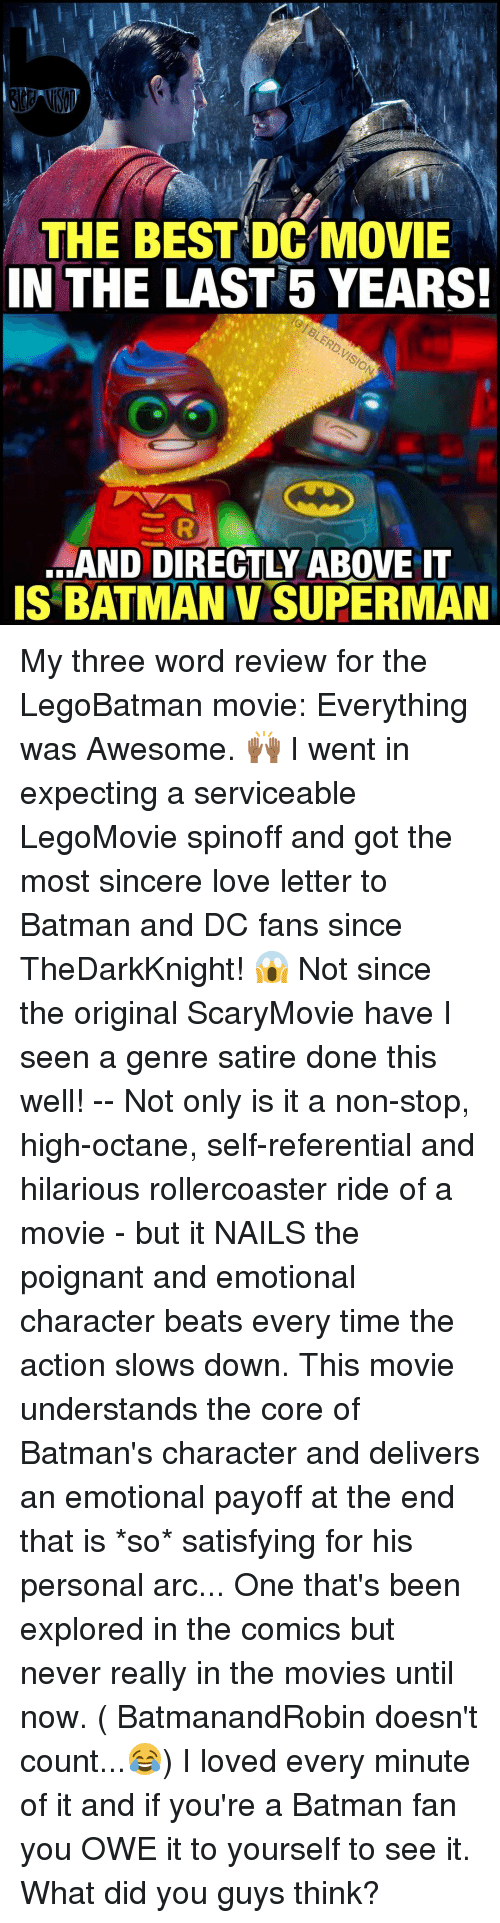 Memes, Batman v Superman, and Love Letter: THE BEST DC MOVIE  IN THE LAST 5 YEARS!  SAND DIRECTLY ABOVE IT  IS BATMAN v SUPERMAN My three word review for the LegoBatman movie: Everything was Awesome. 🙌🏾 I went in expecting a serviceable LegoMovie spinoff and got the most sincere love letter to Batman and DC fans since TheDarkKnight! 😱 Not since the original ScaryMovie have I seen a genre satire done this well! -- Not only is it a non-stop, high-octane, self-referential and hilarious rollercoaster ride of a movie - but it NAILS the poignant and emotional character beats every time the action slows down. This movie understands the core of Batman's character and delivers an emotional payoff at the end that is *so* satisfying for his personal arc... One that's been explored in the comics but never really in the movies until now. ( BatmanandRobin doesn't count...😂) I loved every minute of it and if you're a Batman fan you OWE it to yourself to see it. What did you guys think?